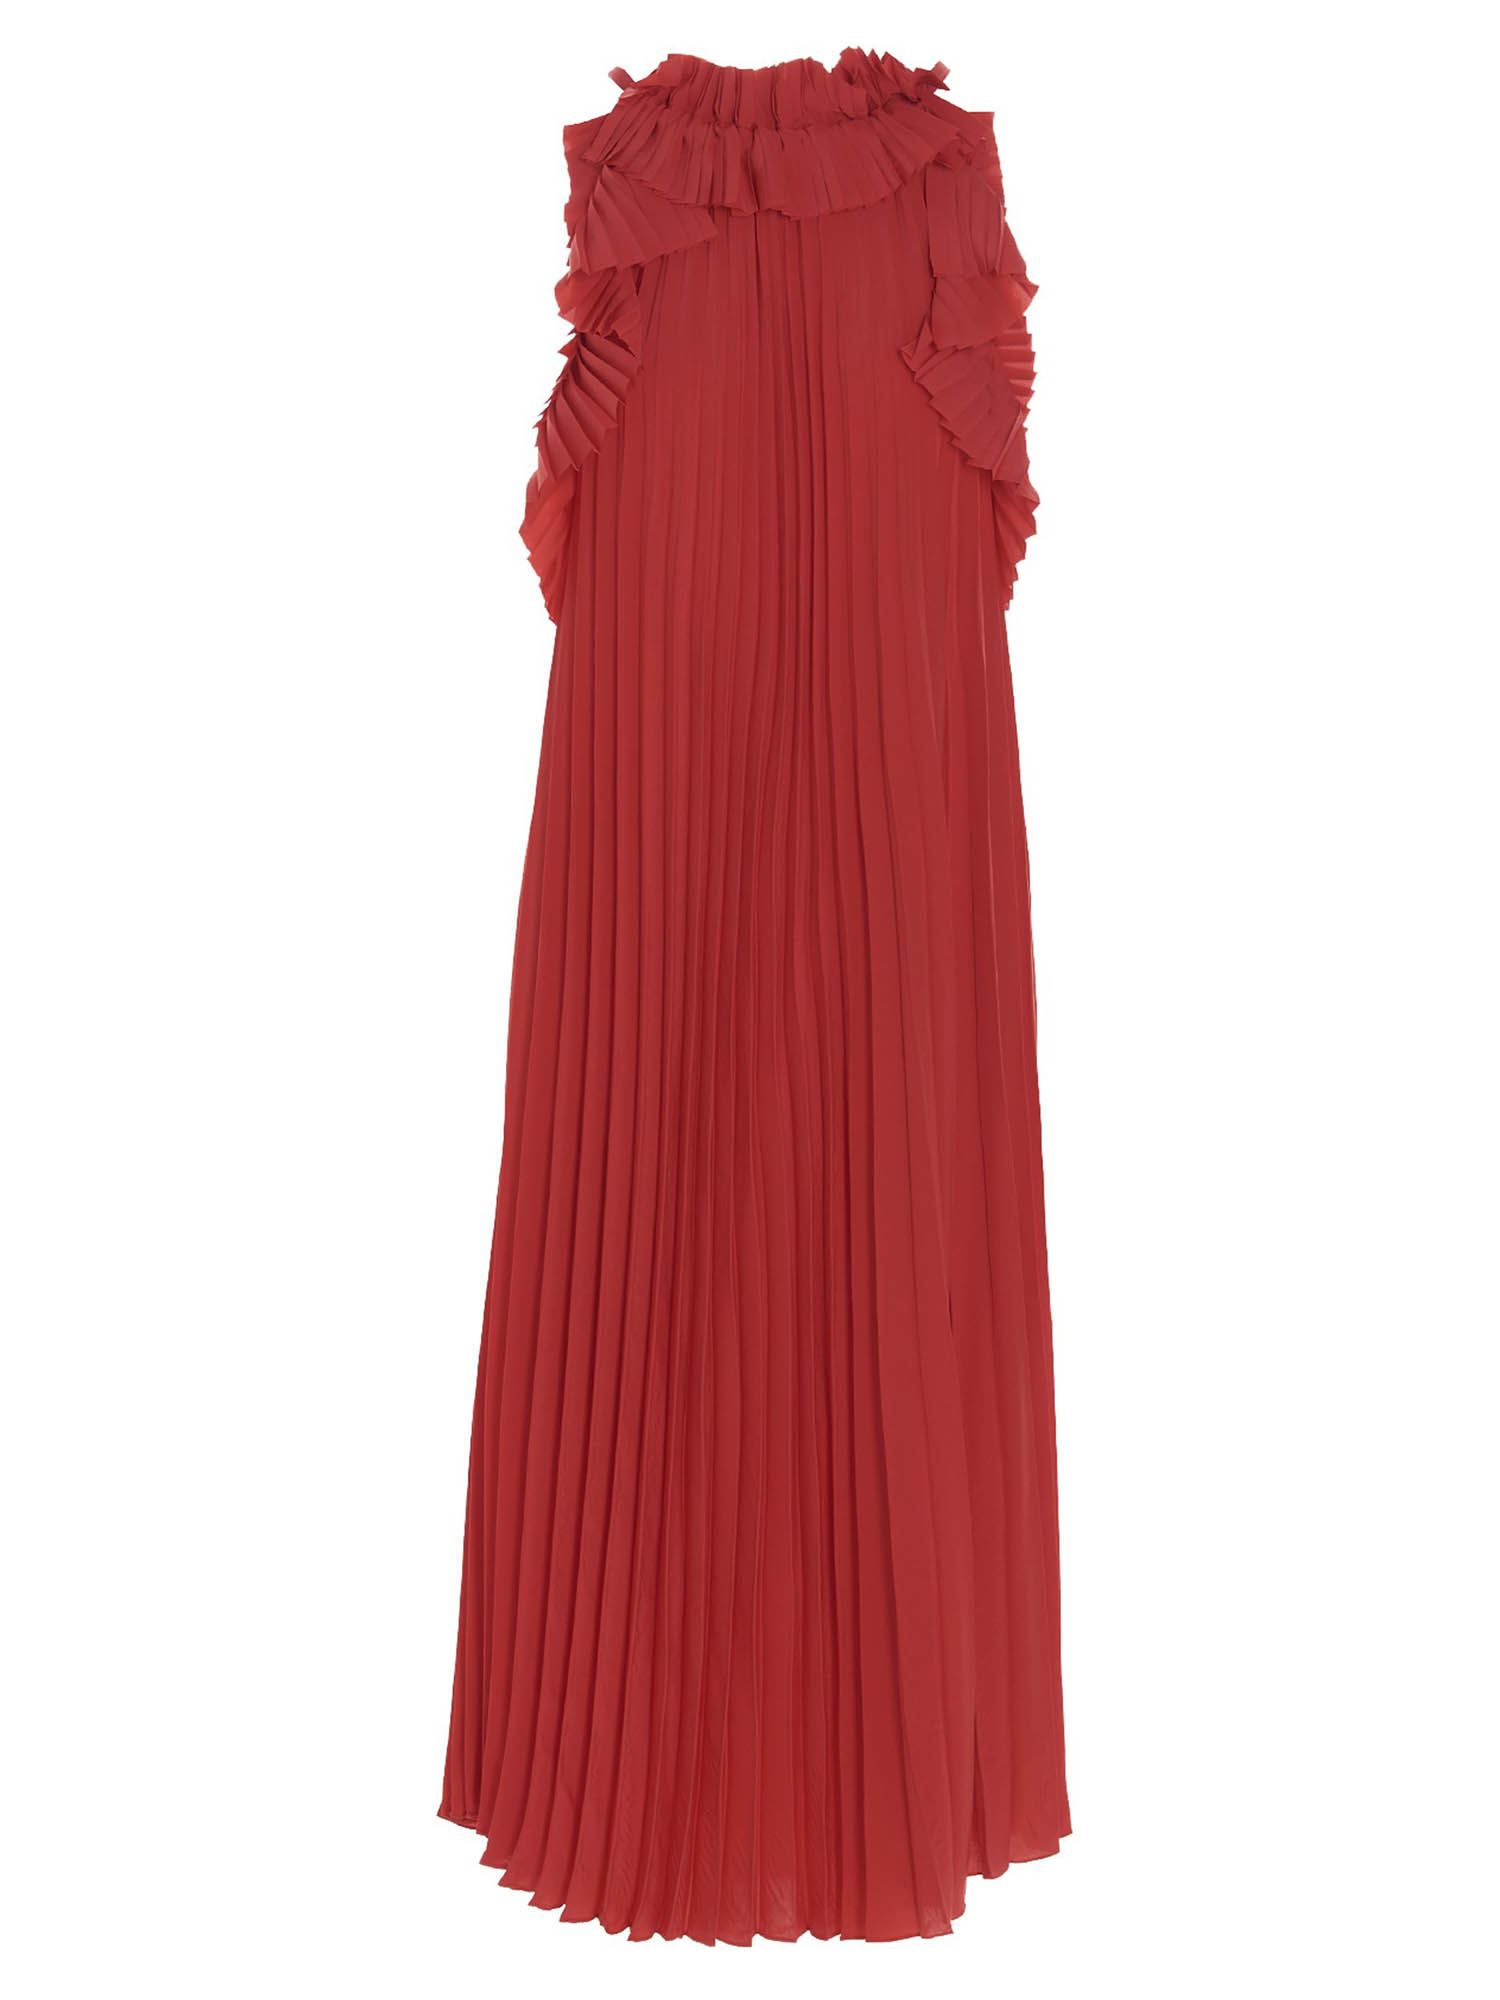 P.a.r.o.s.h. RUFFLED DRESS IN RED